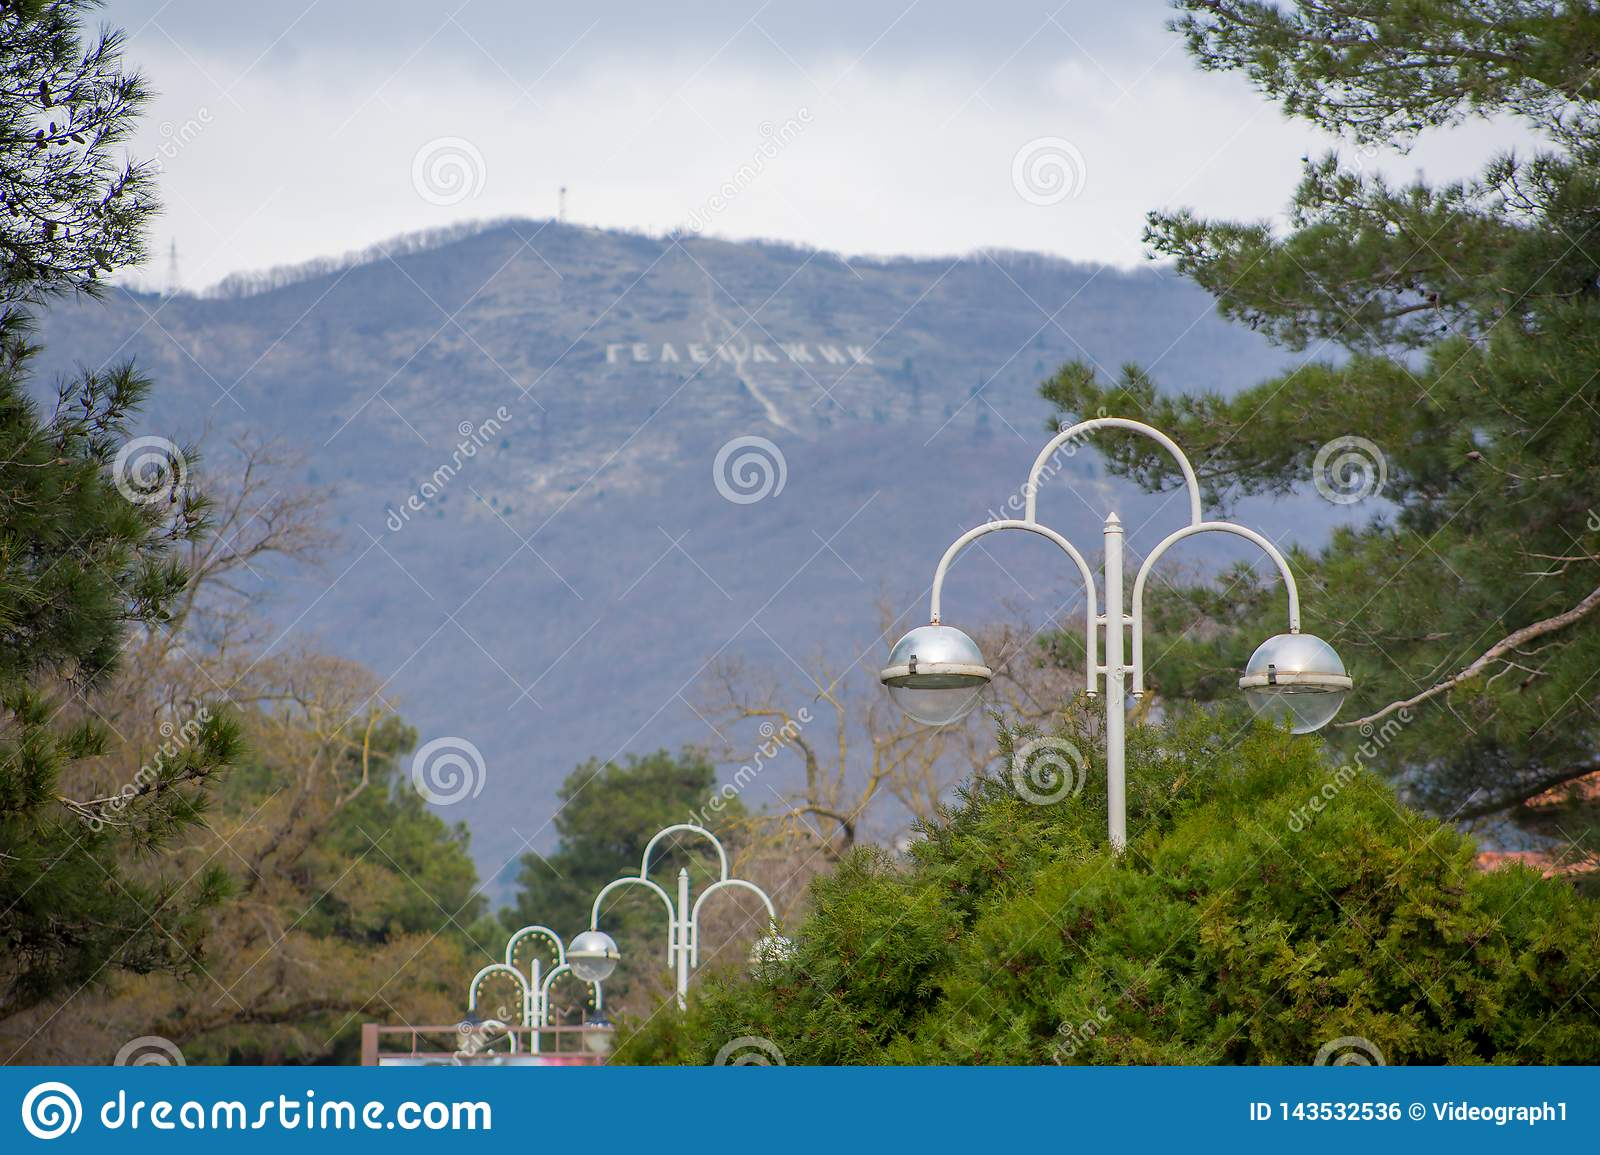 Amazing beautiful view of mountains with inscription `Gelendzhik` from city alley with beautiful lanterns and green trees